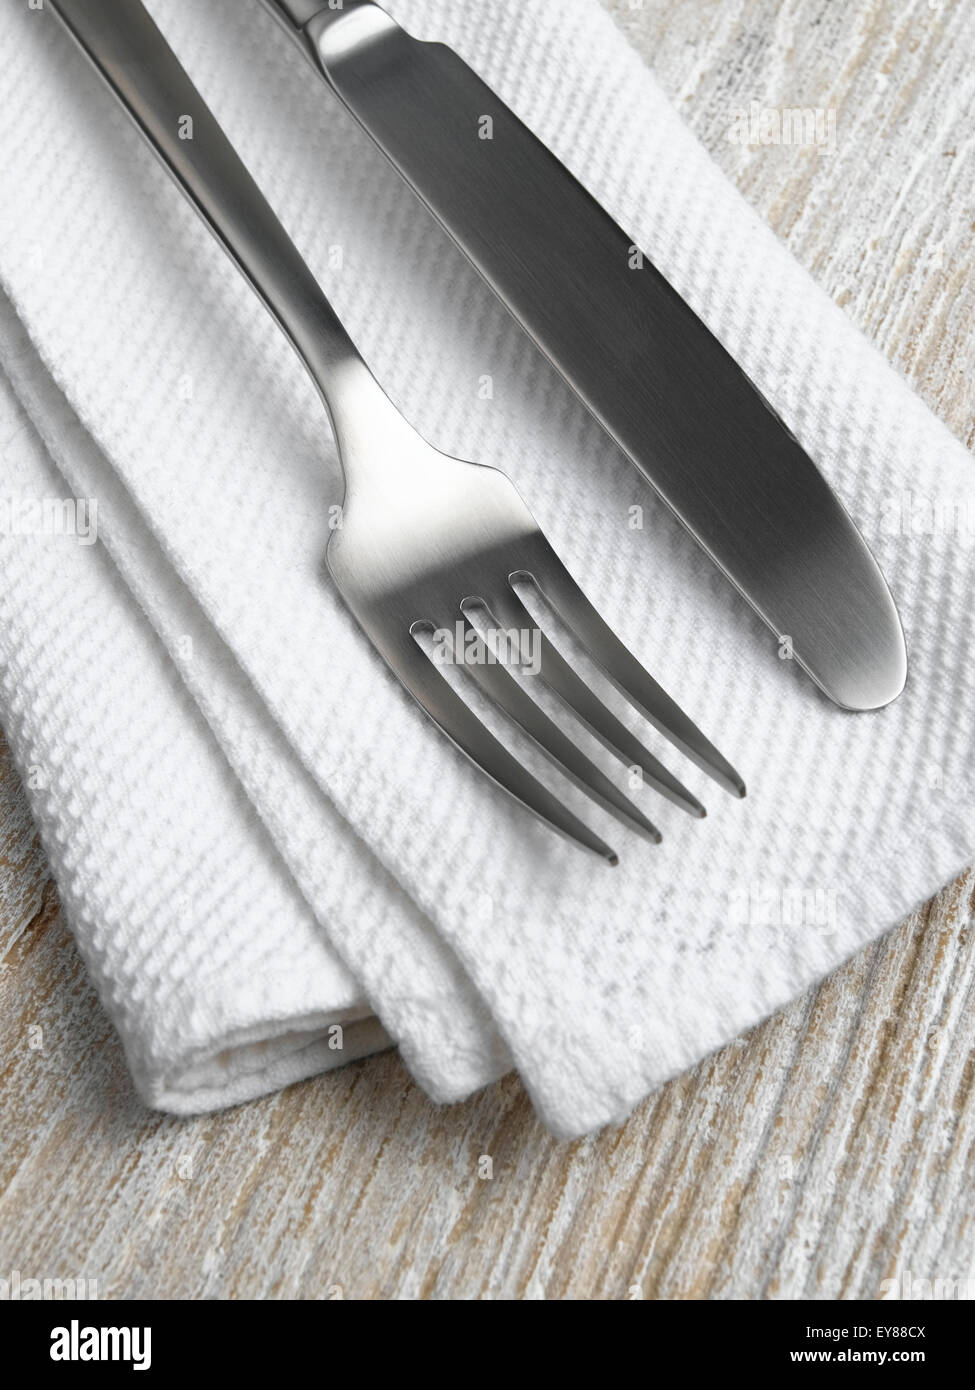 Napkin and cutlery - Stock Image